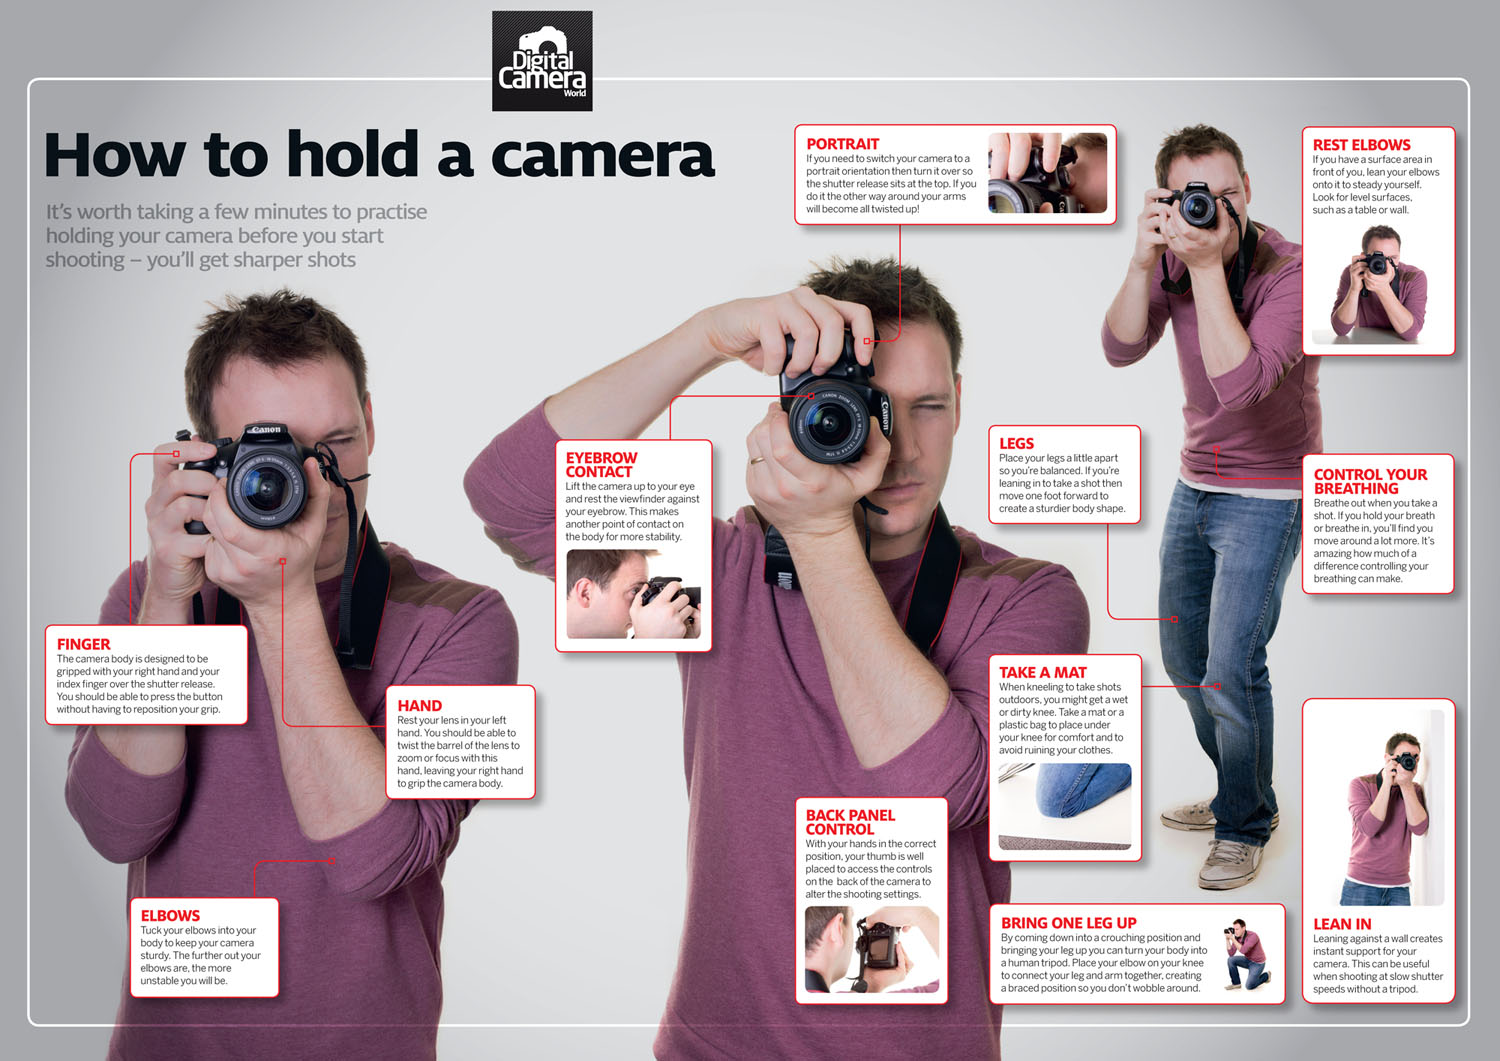 How to hold a camera cheat sheet